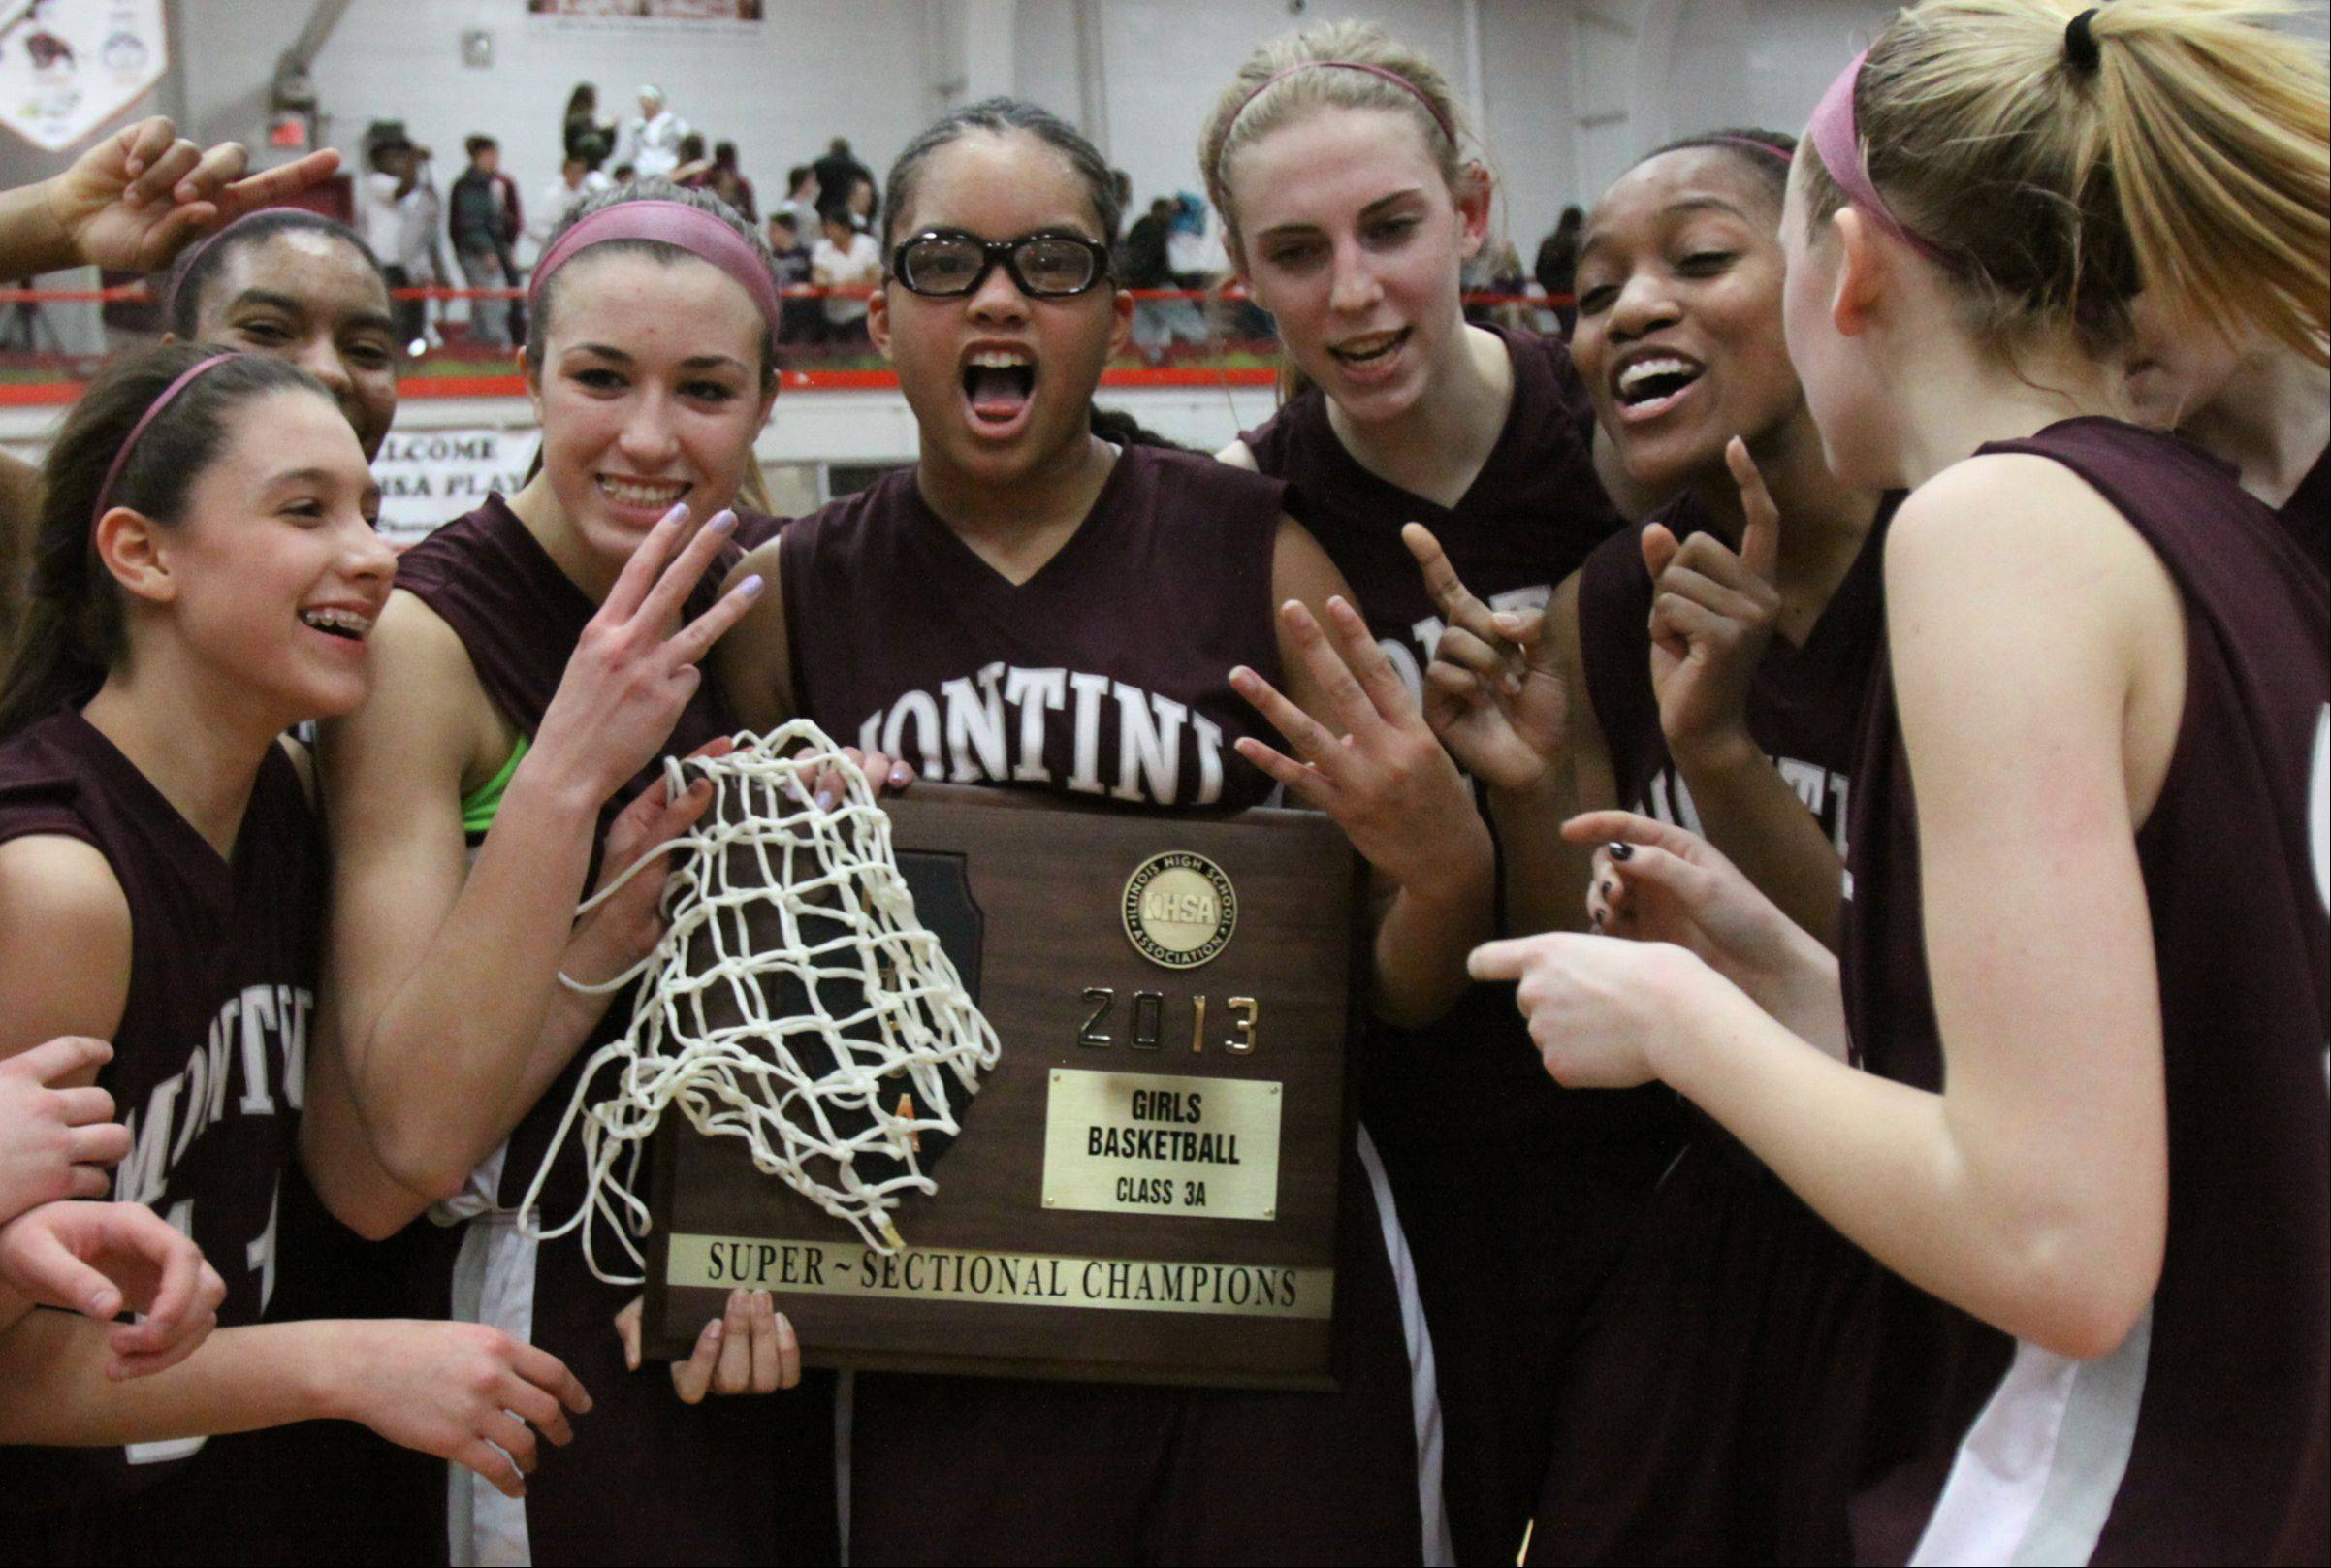 Montini plays Phillips Monday night in Class 3A girls basketball supersectional action at Hinsdale Central High School.